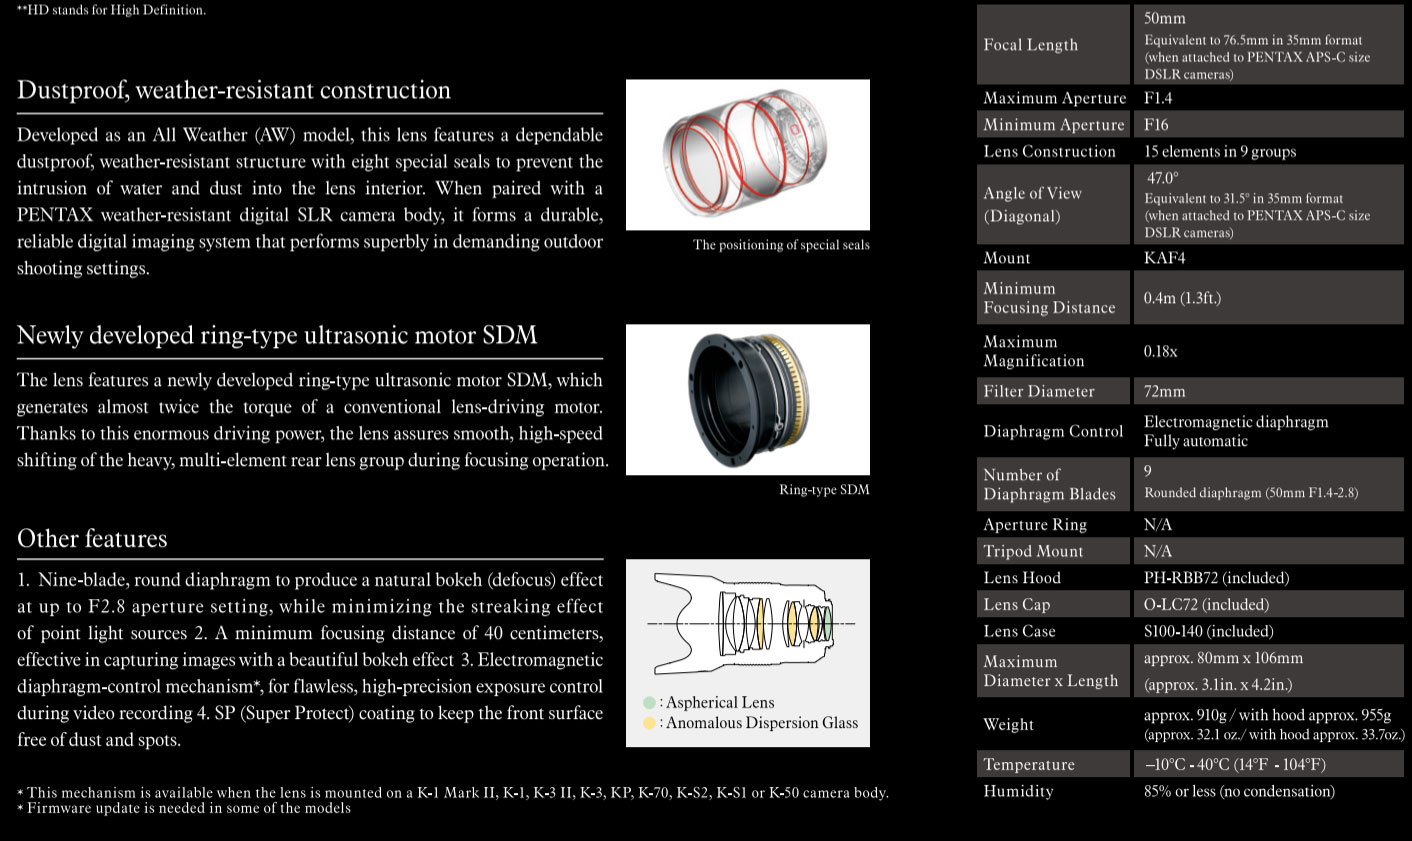 HD PENTAX-D FA ☆ 50mm f/1 4 SDM AW lens specifications and